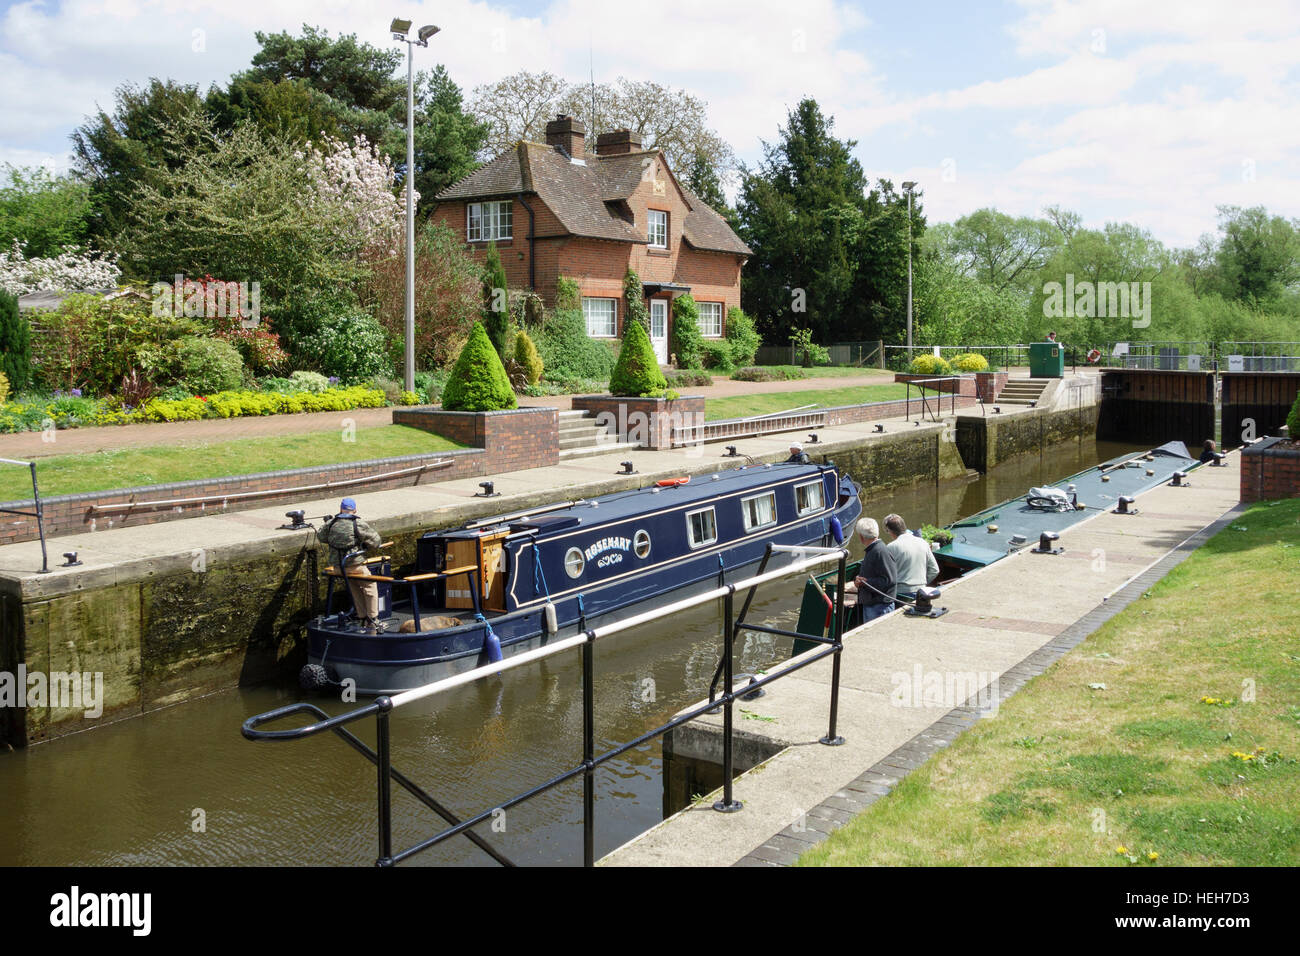 A narrow boat passing through Hambleden lock on the river Thames, Berkshire, England - Stock Image